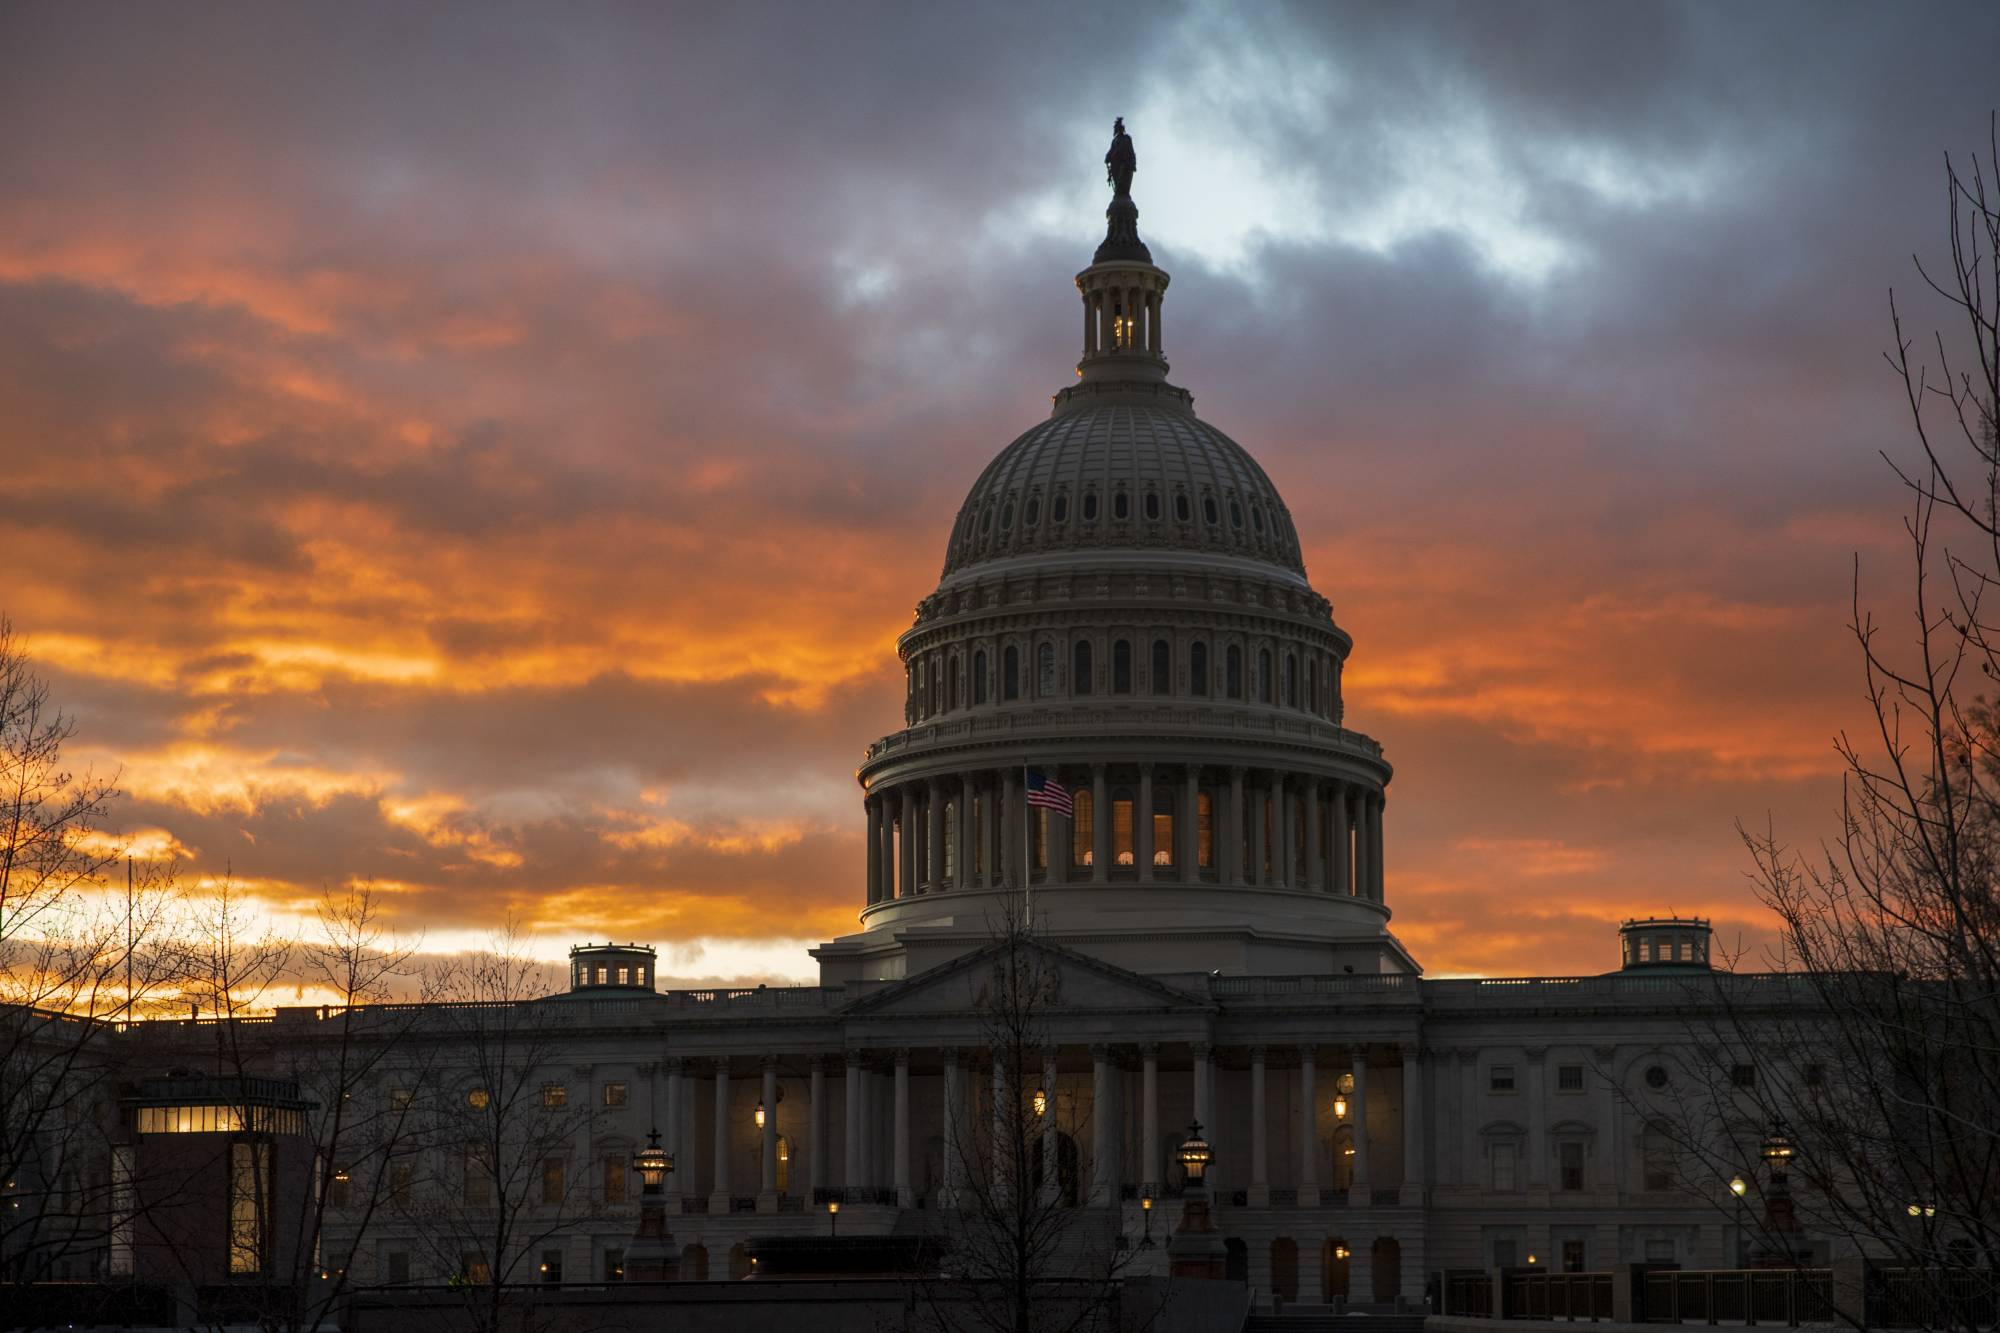 The Capitol iat sunset after the Senate rejected competing Democratic and Republican proposals for ending the partial government shutdown, which is the longest in the nation's history, in Washington, Thursday, Jan. 24, 2019. (AP Photo/J. Scott Applewhite)